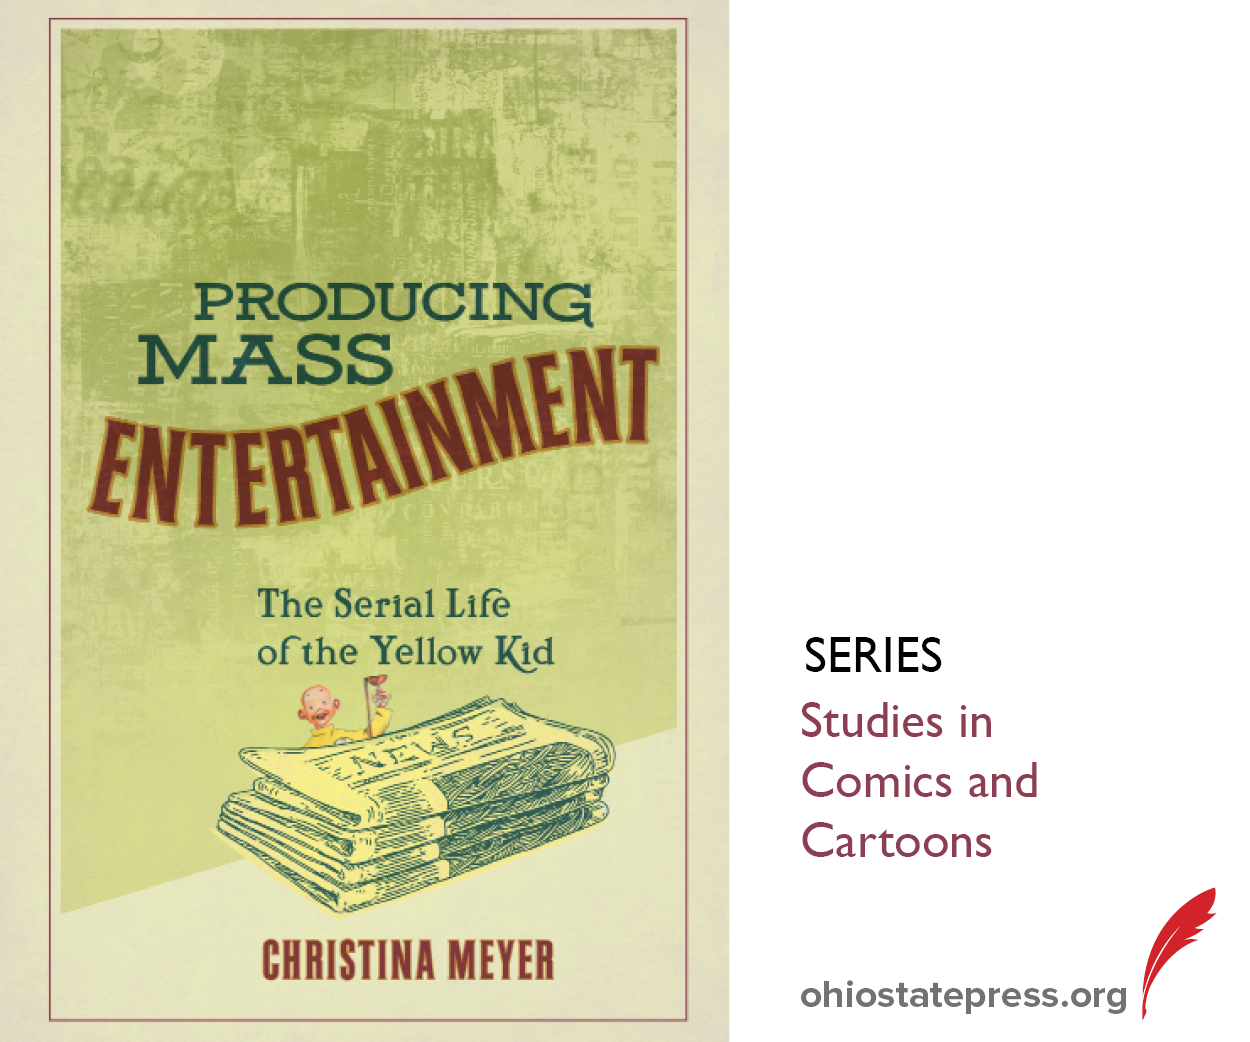 Book cover for  Producing Mass Entertainment The Serial Life of the Yellow Kid by CHRISTINA MEYER in Studies in Comics and Cartoons Series from The Ohio State University Press